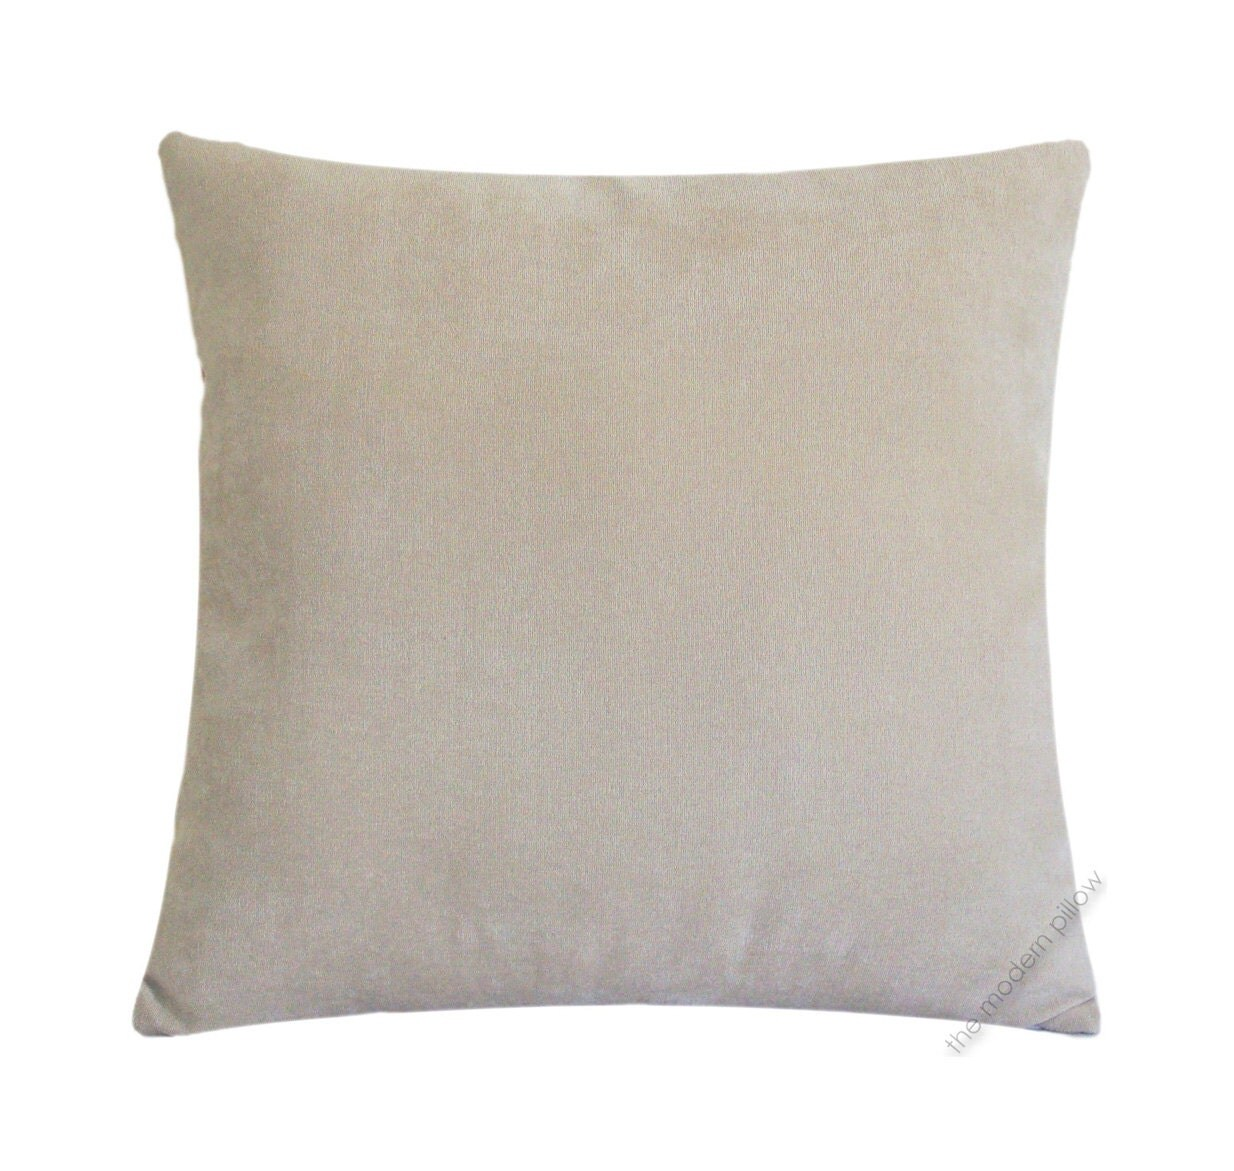 Beige Velvet Solid Decorative Throw Pillow Cover / Pillow Case